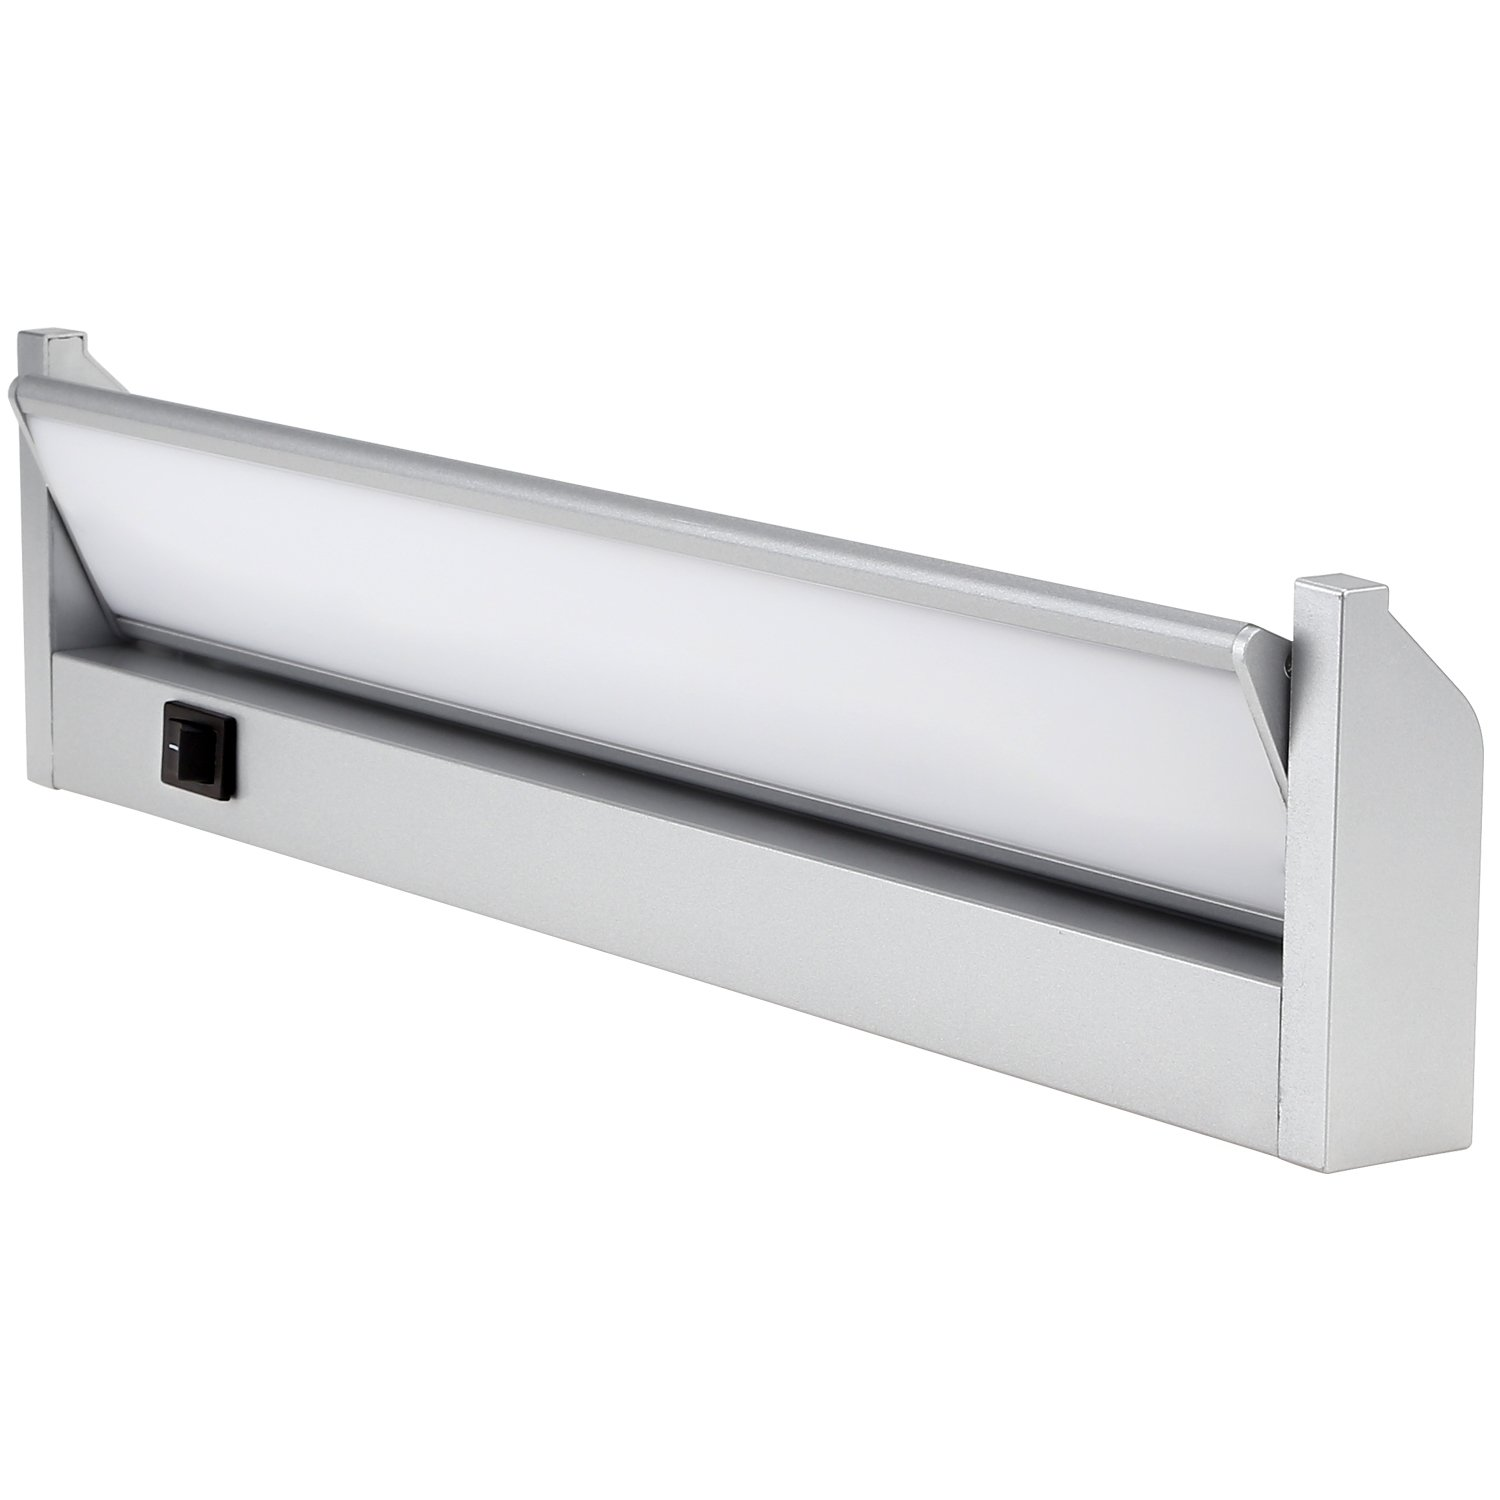 Multi function LED Under Cabinet Lighting Fixture Hardwired